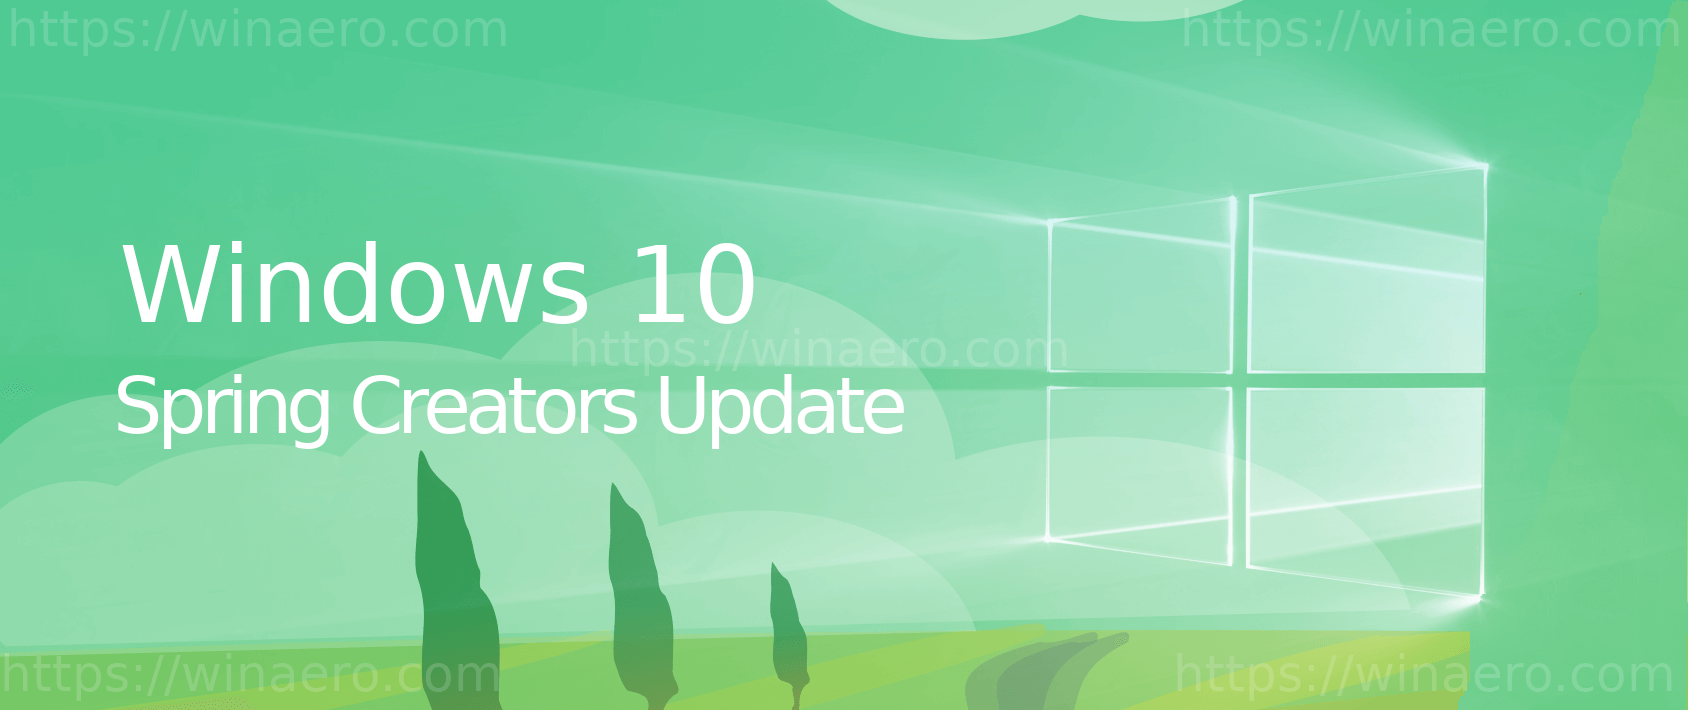 WIndows 10 Spring Creators Update Banner